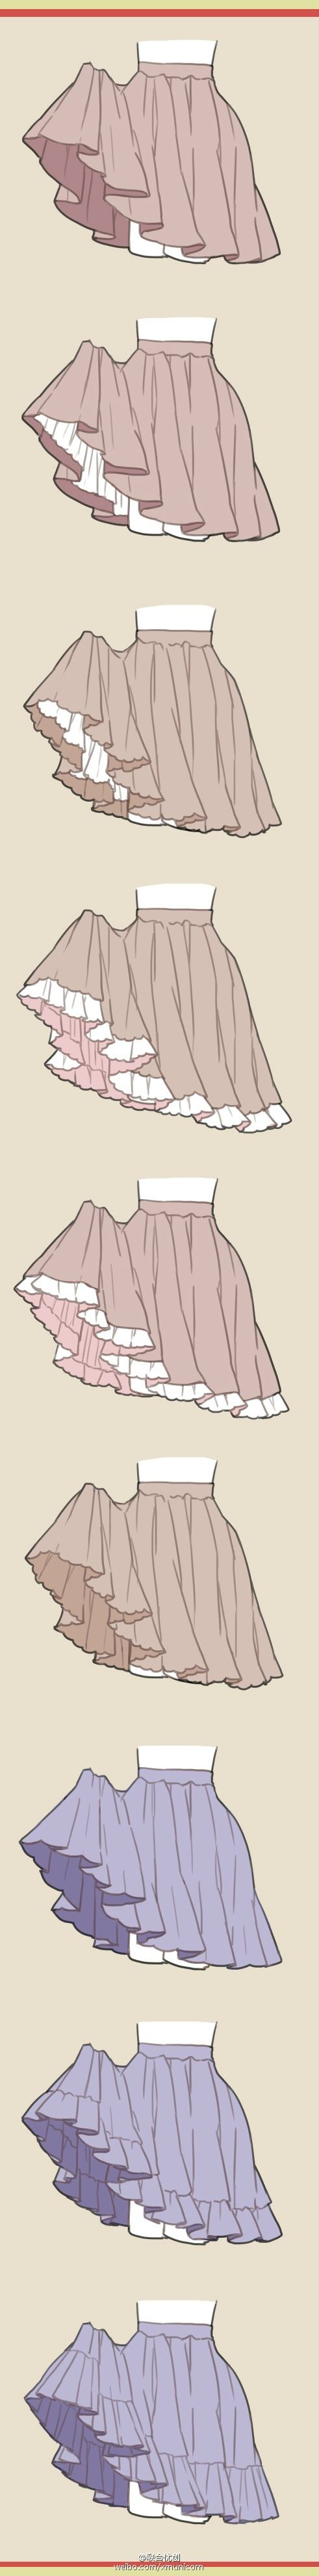 Different ways to draw ruffled skirts. -- Drawing tools, inspiration, creativity, tutorial, reference sheet, guide, girl, cute, poses